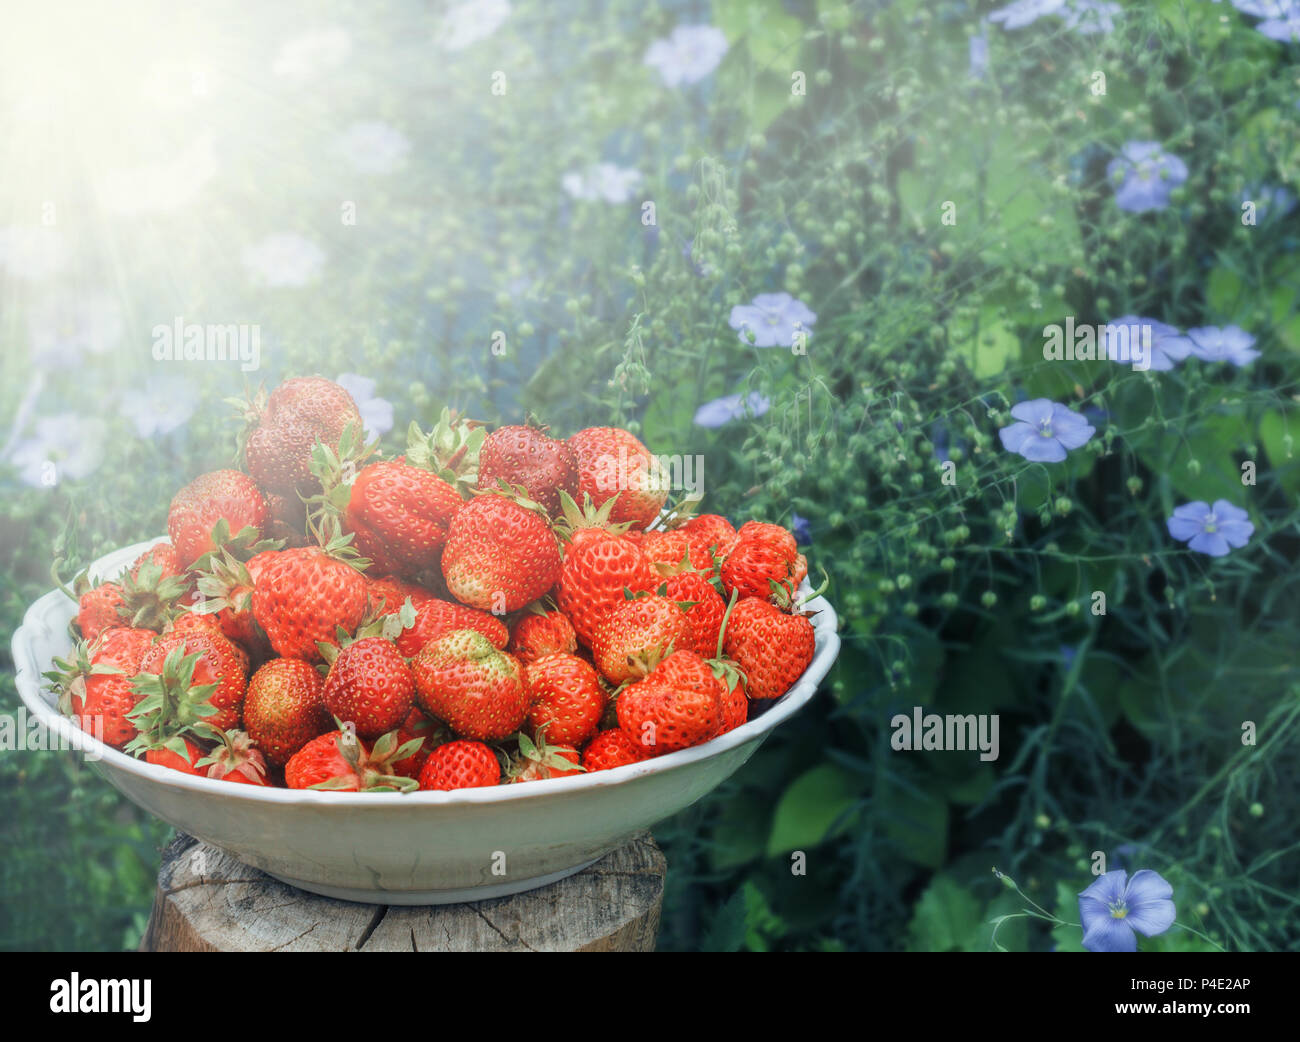 Red Fresh Ripe Strawberries And Blue Pretty Flowers Of Flowering